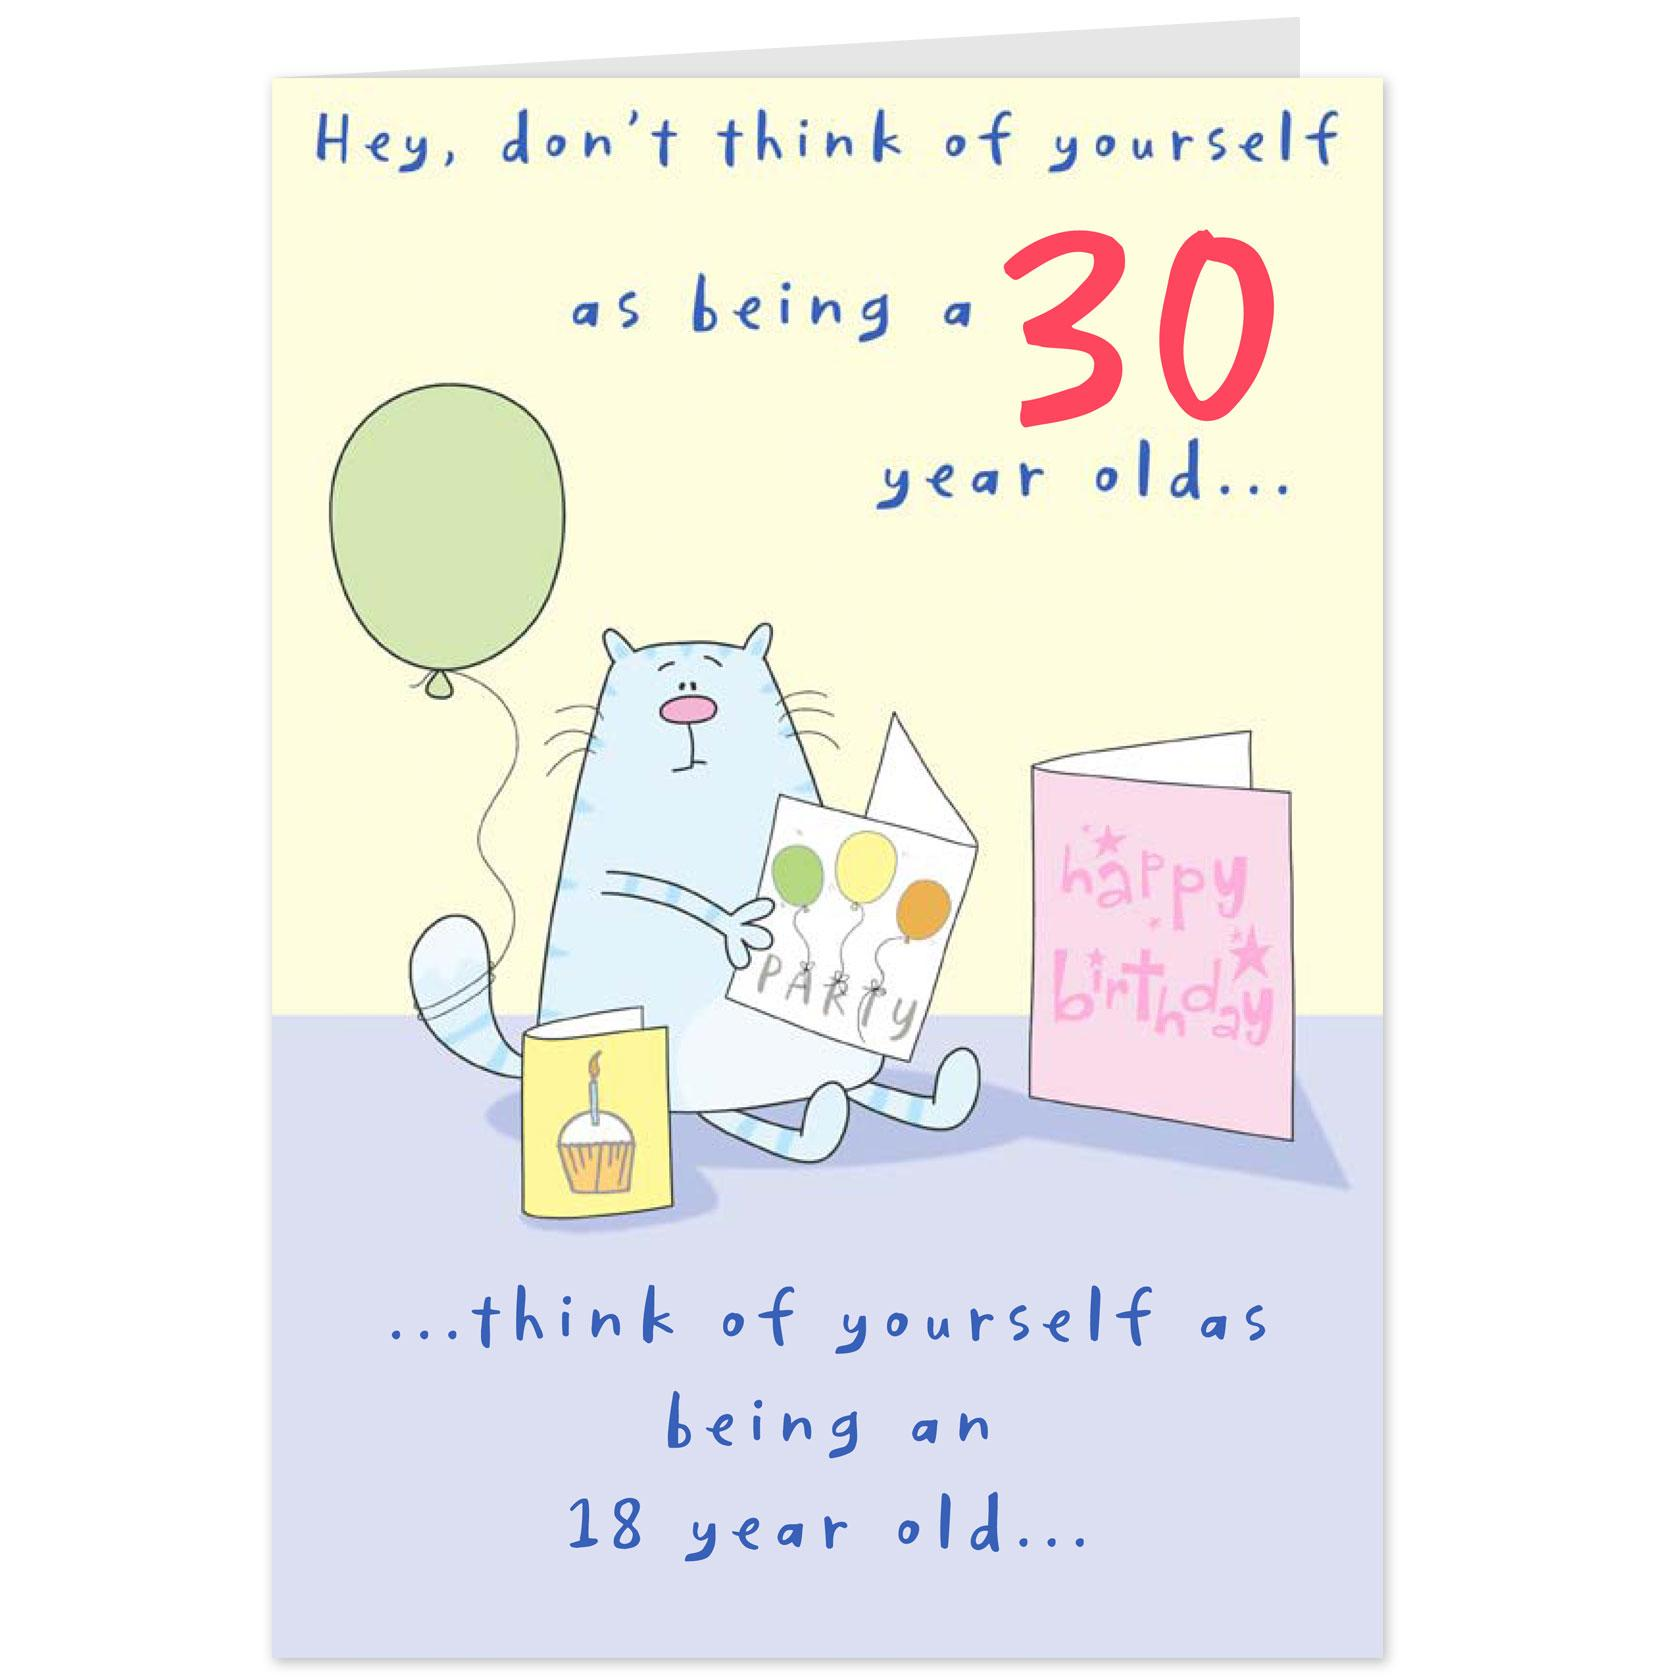 30th birthday card sayings gallery birthday cards ideas 30th birthday quotes for her funny best quote 2018 a hilarious tribute funny birthday wishes for bookmarktalkfo Choice Image